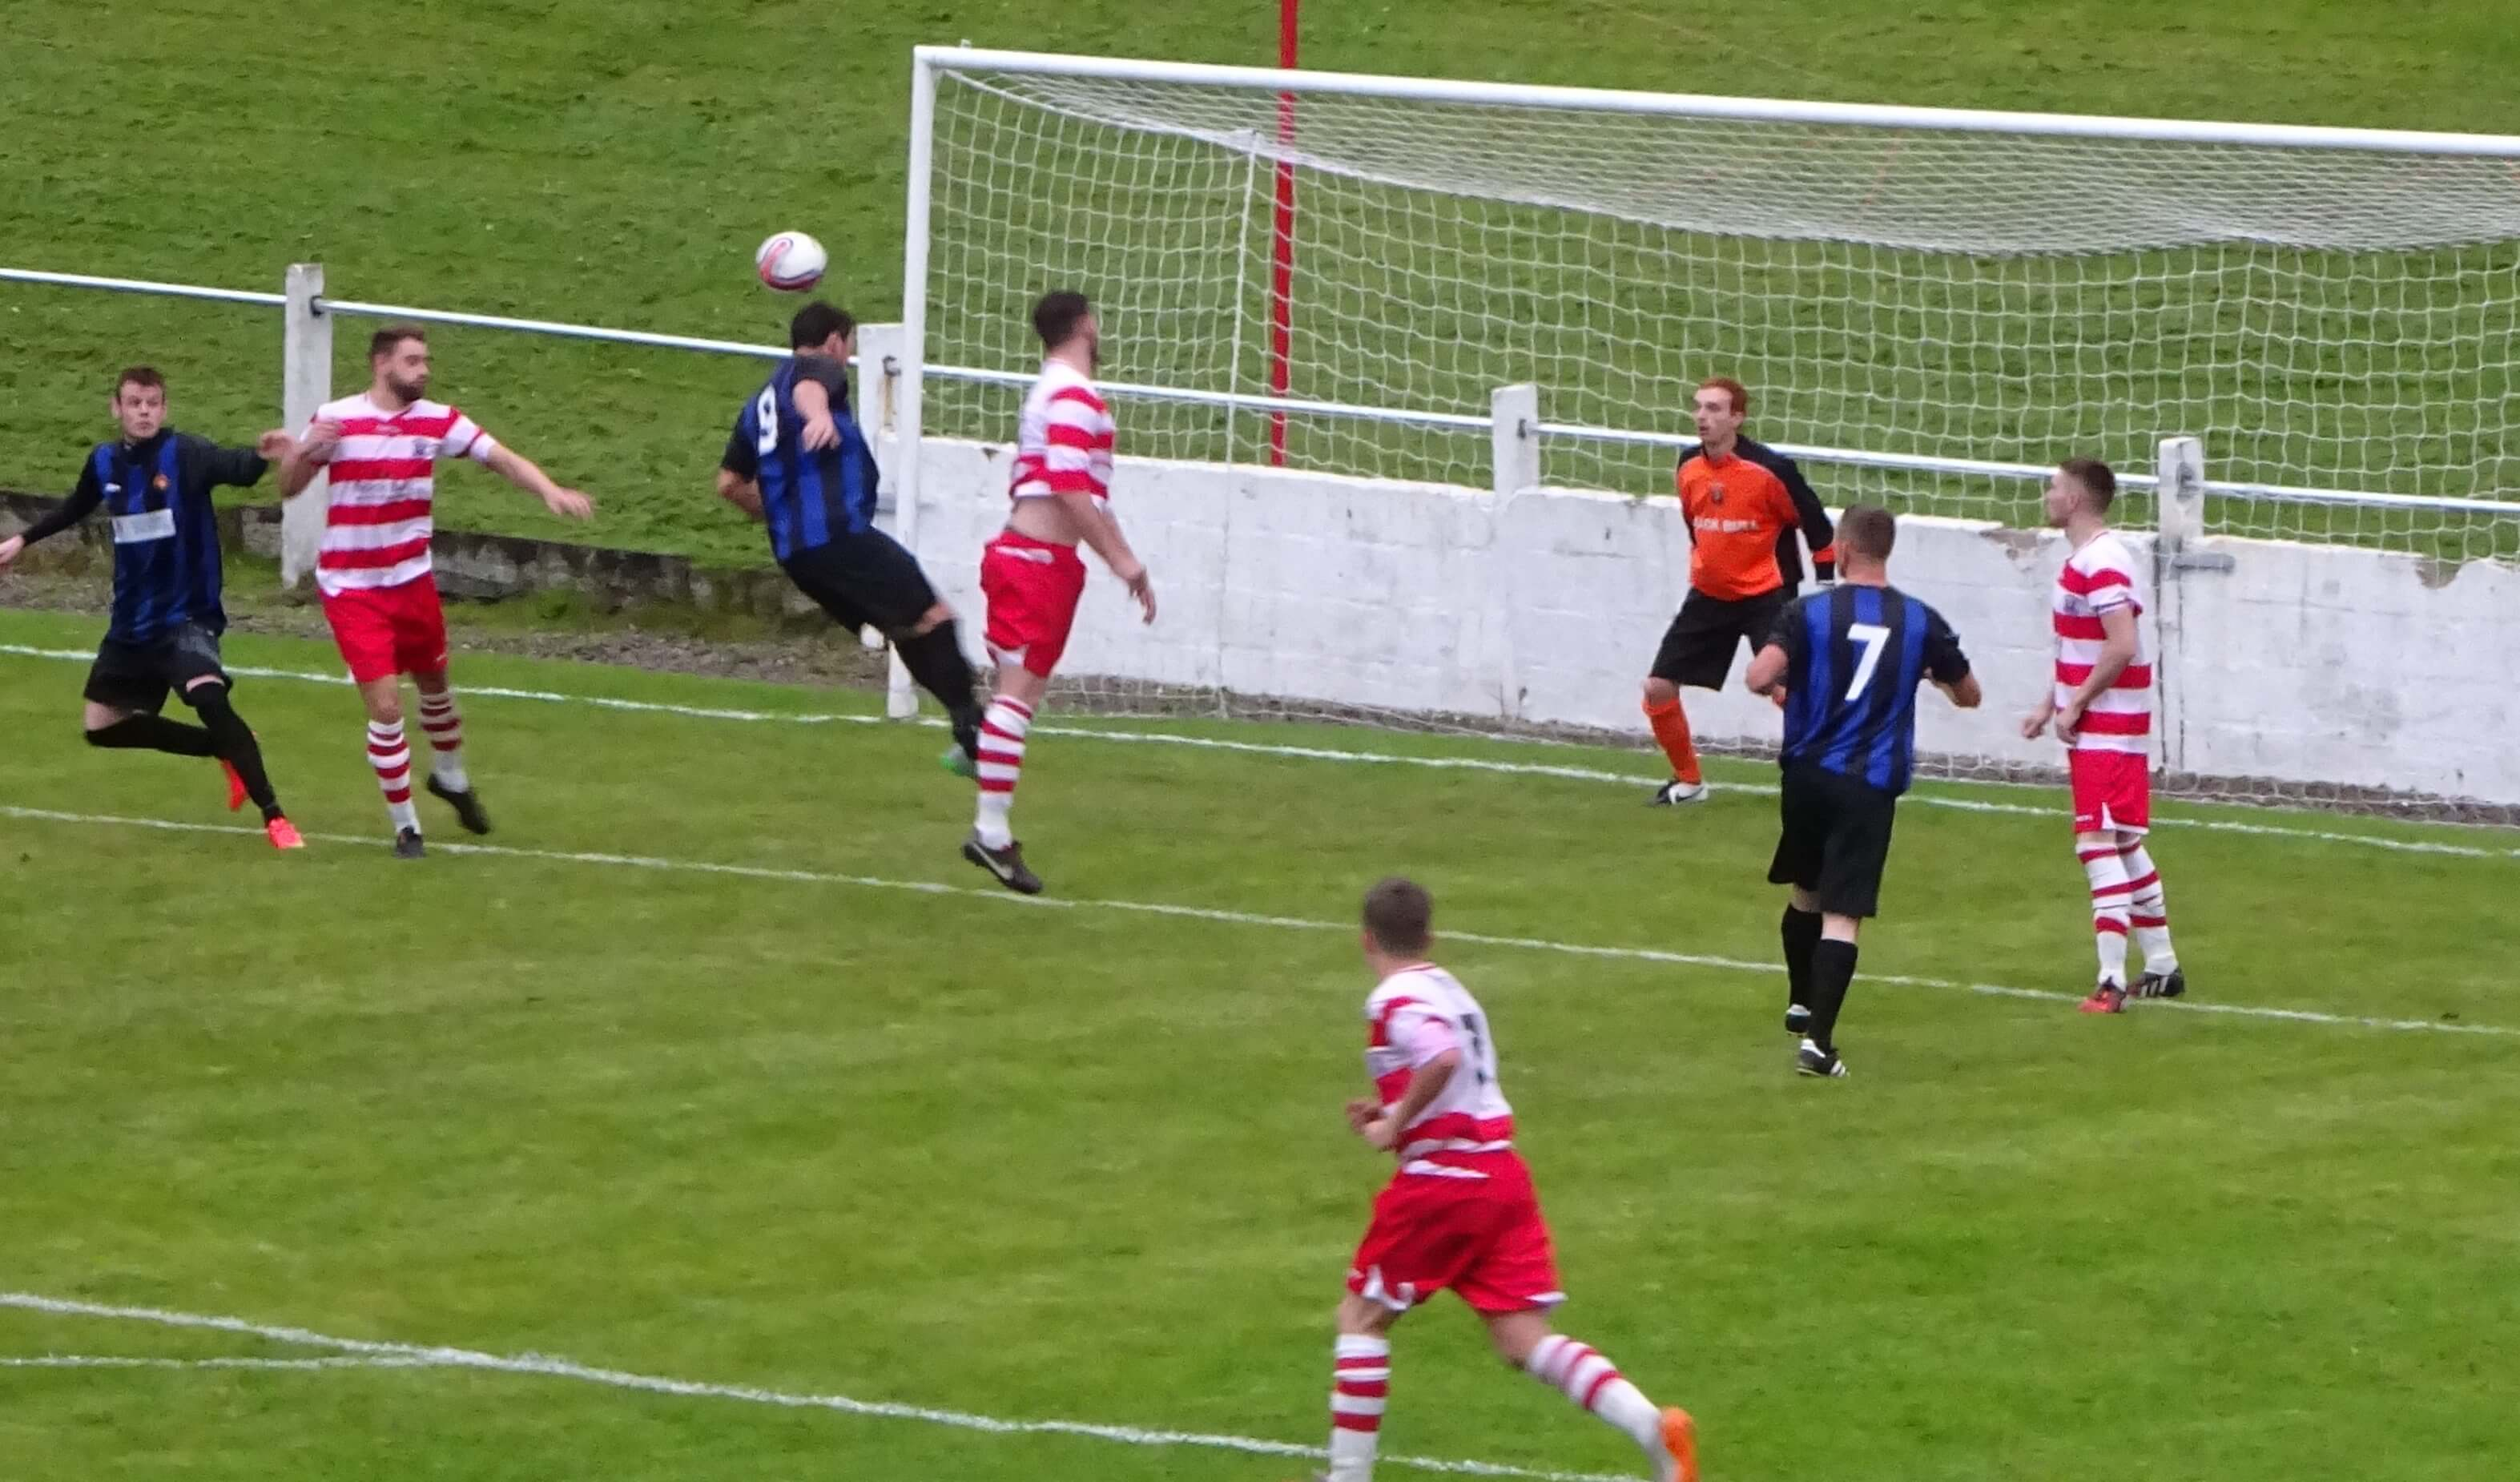 McStay header goes past the post